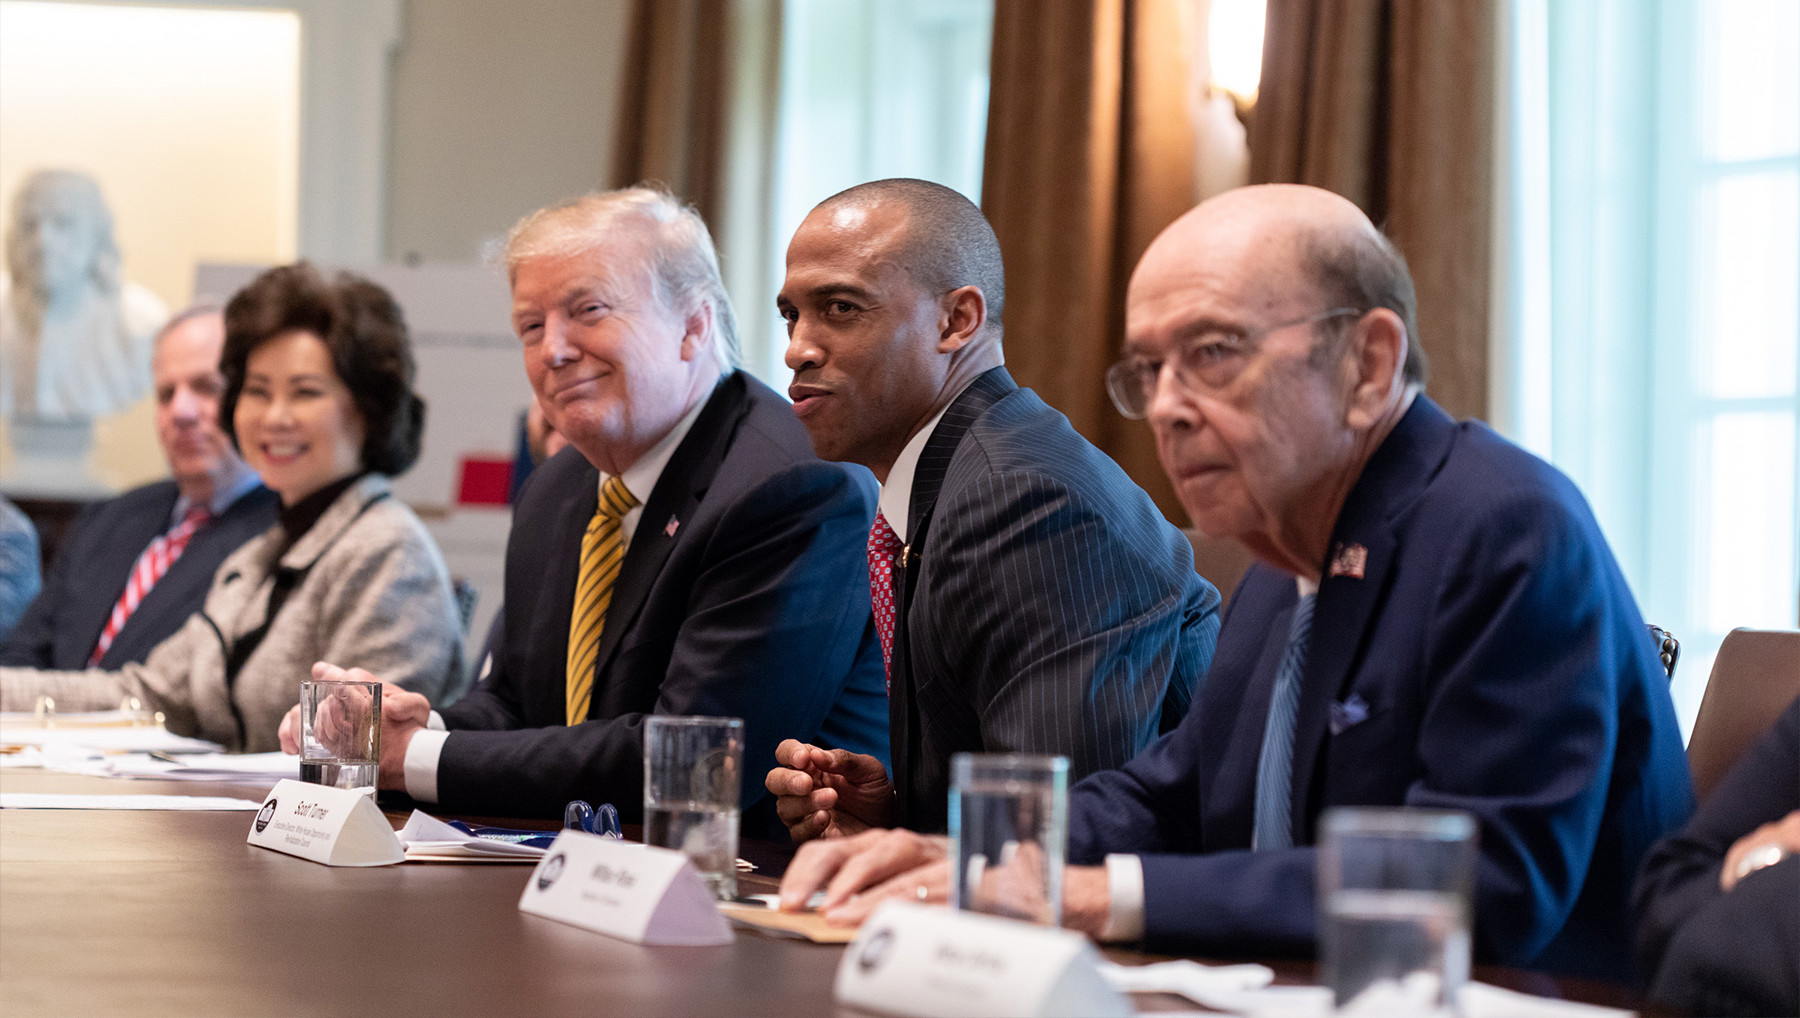 President Trump leads a meeting on Opportunity Zones